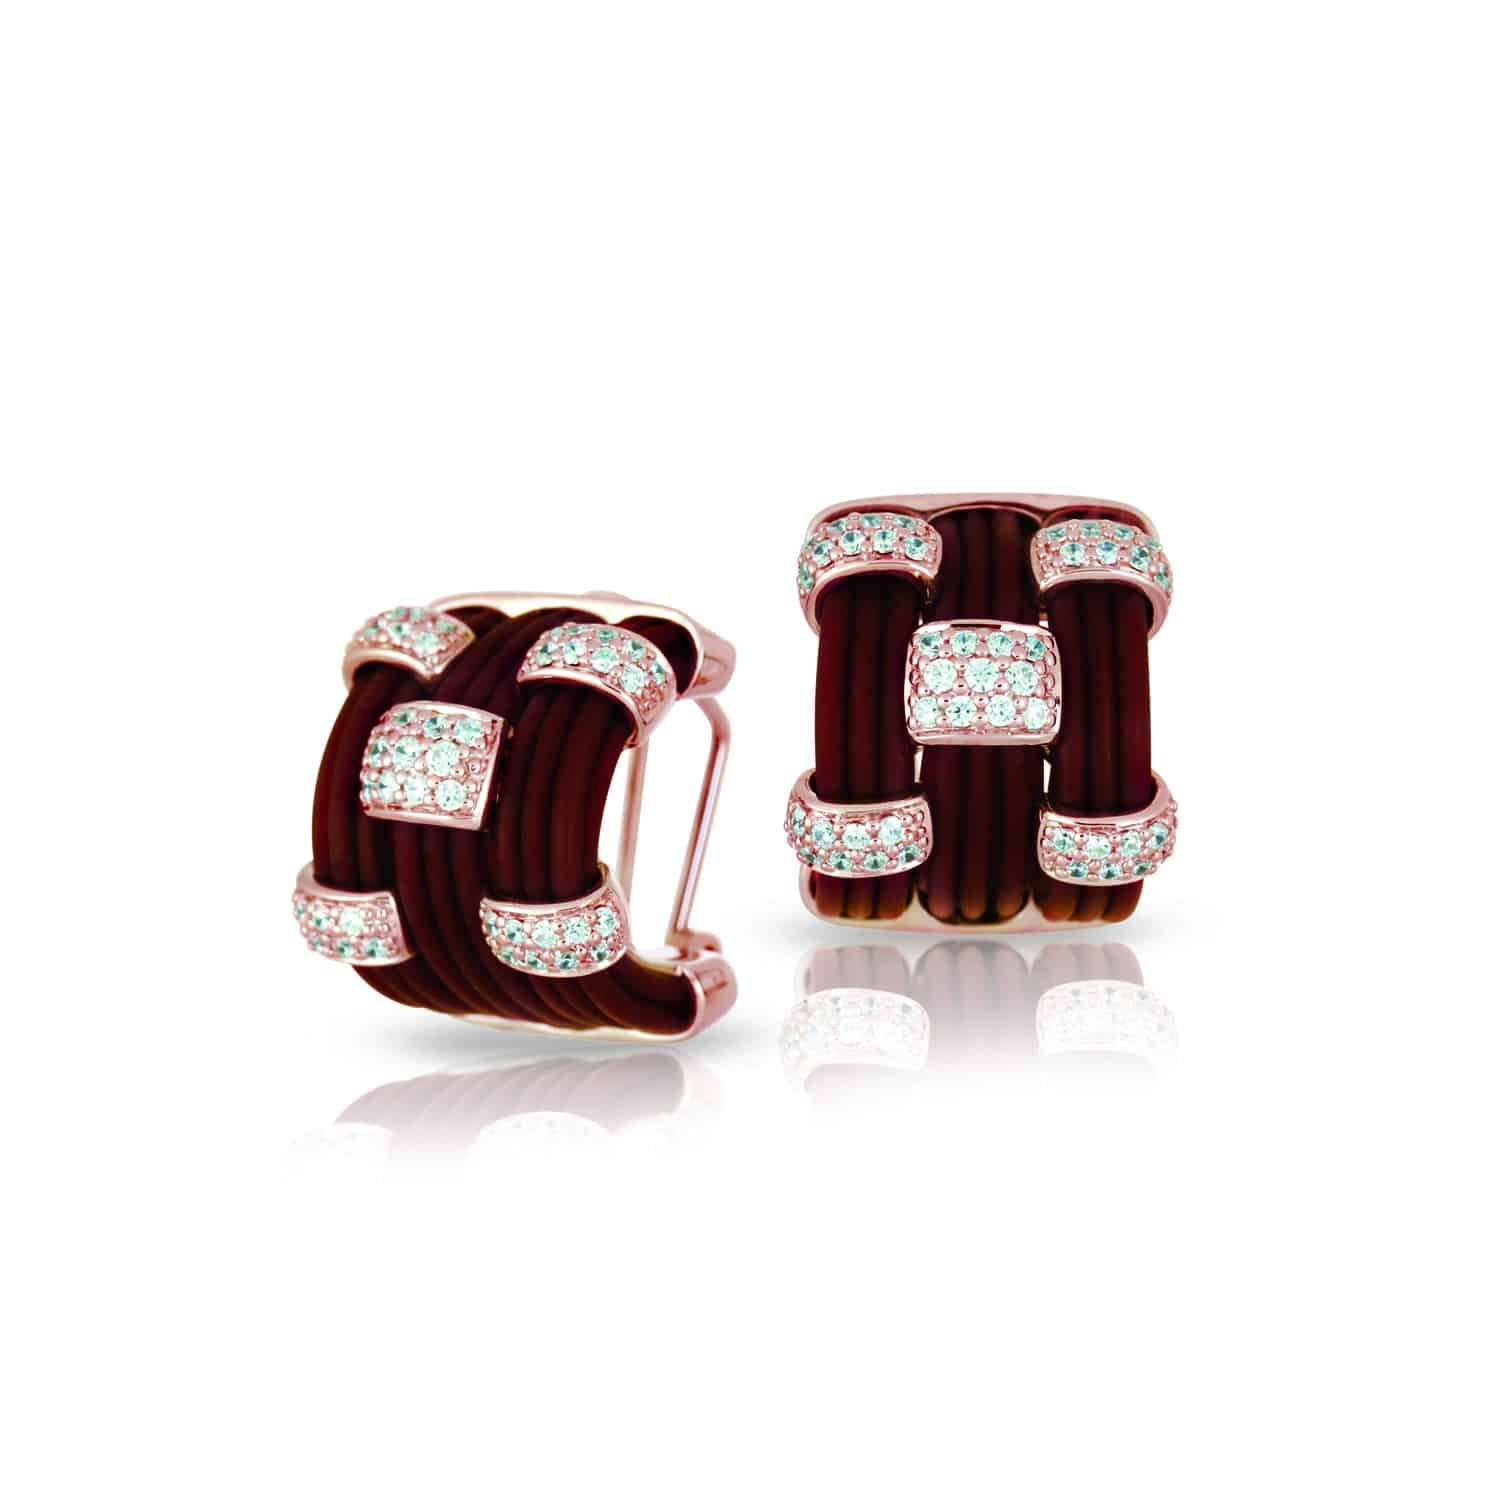 Belle Étoile Legato Brown and Rose Earrings